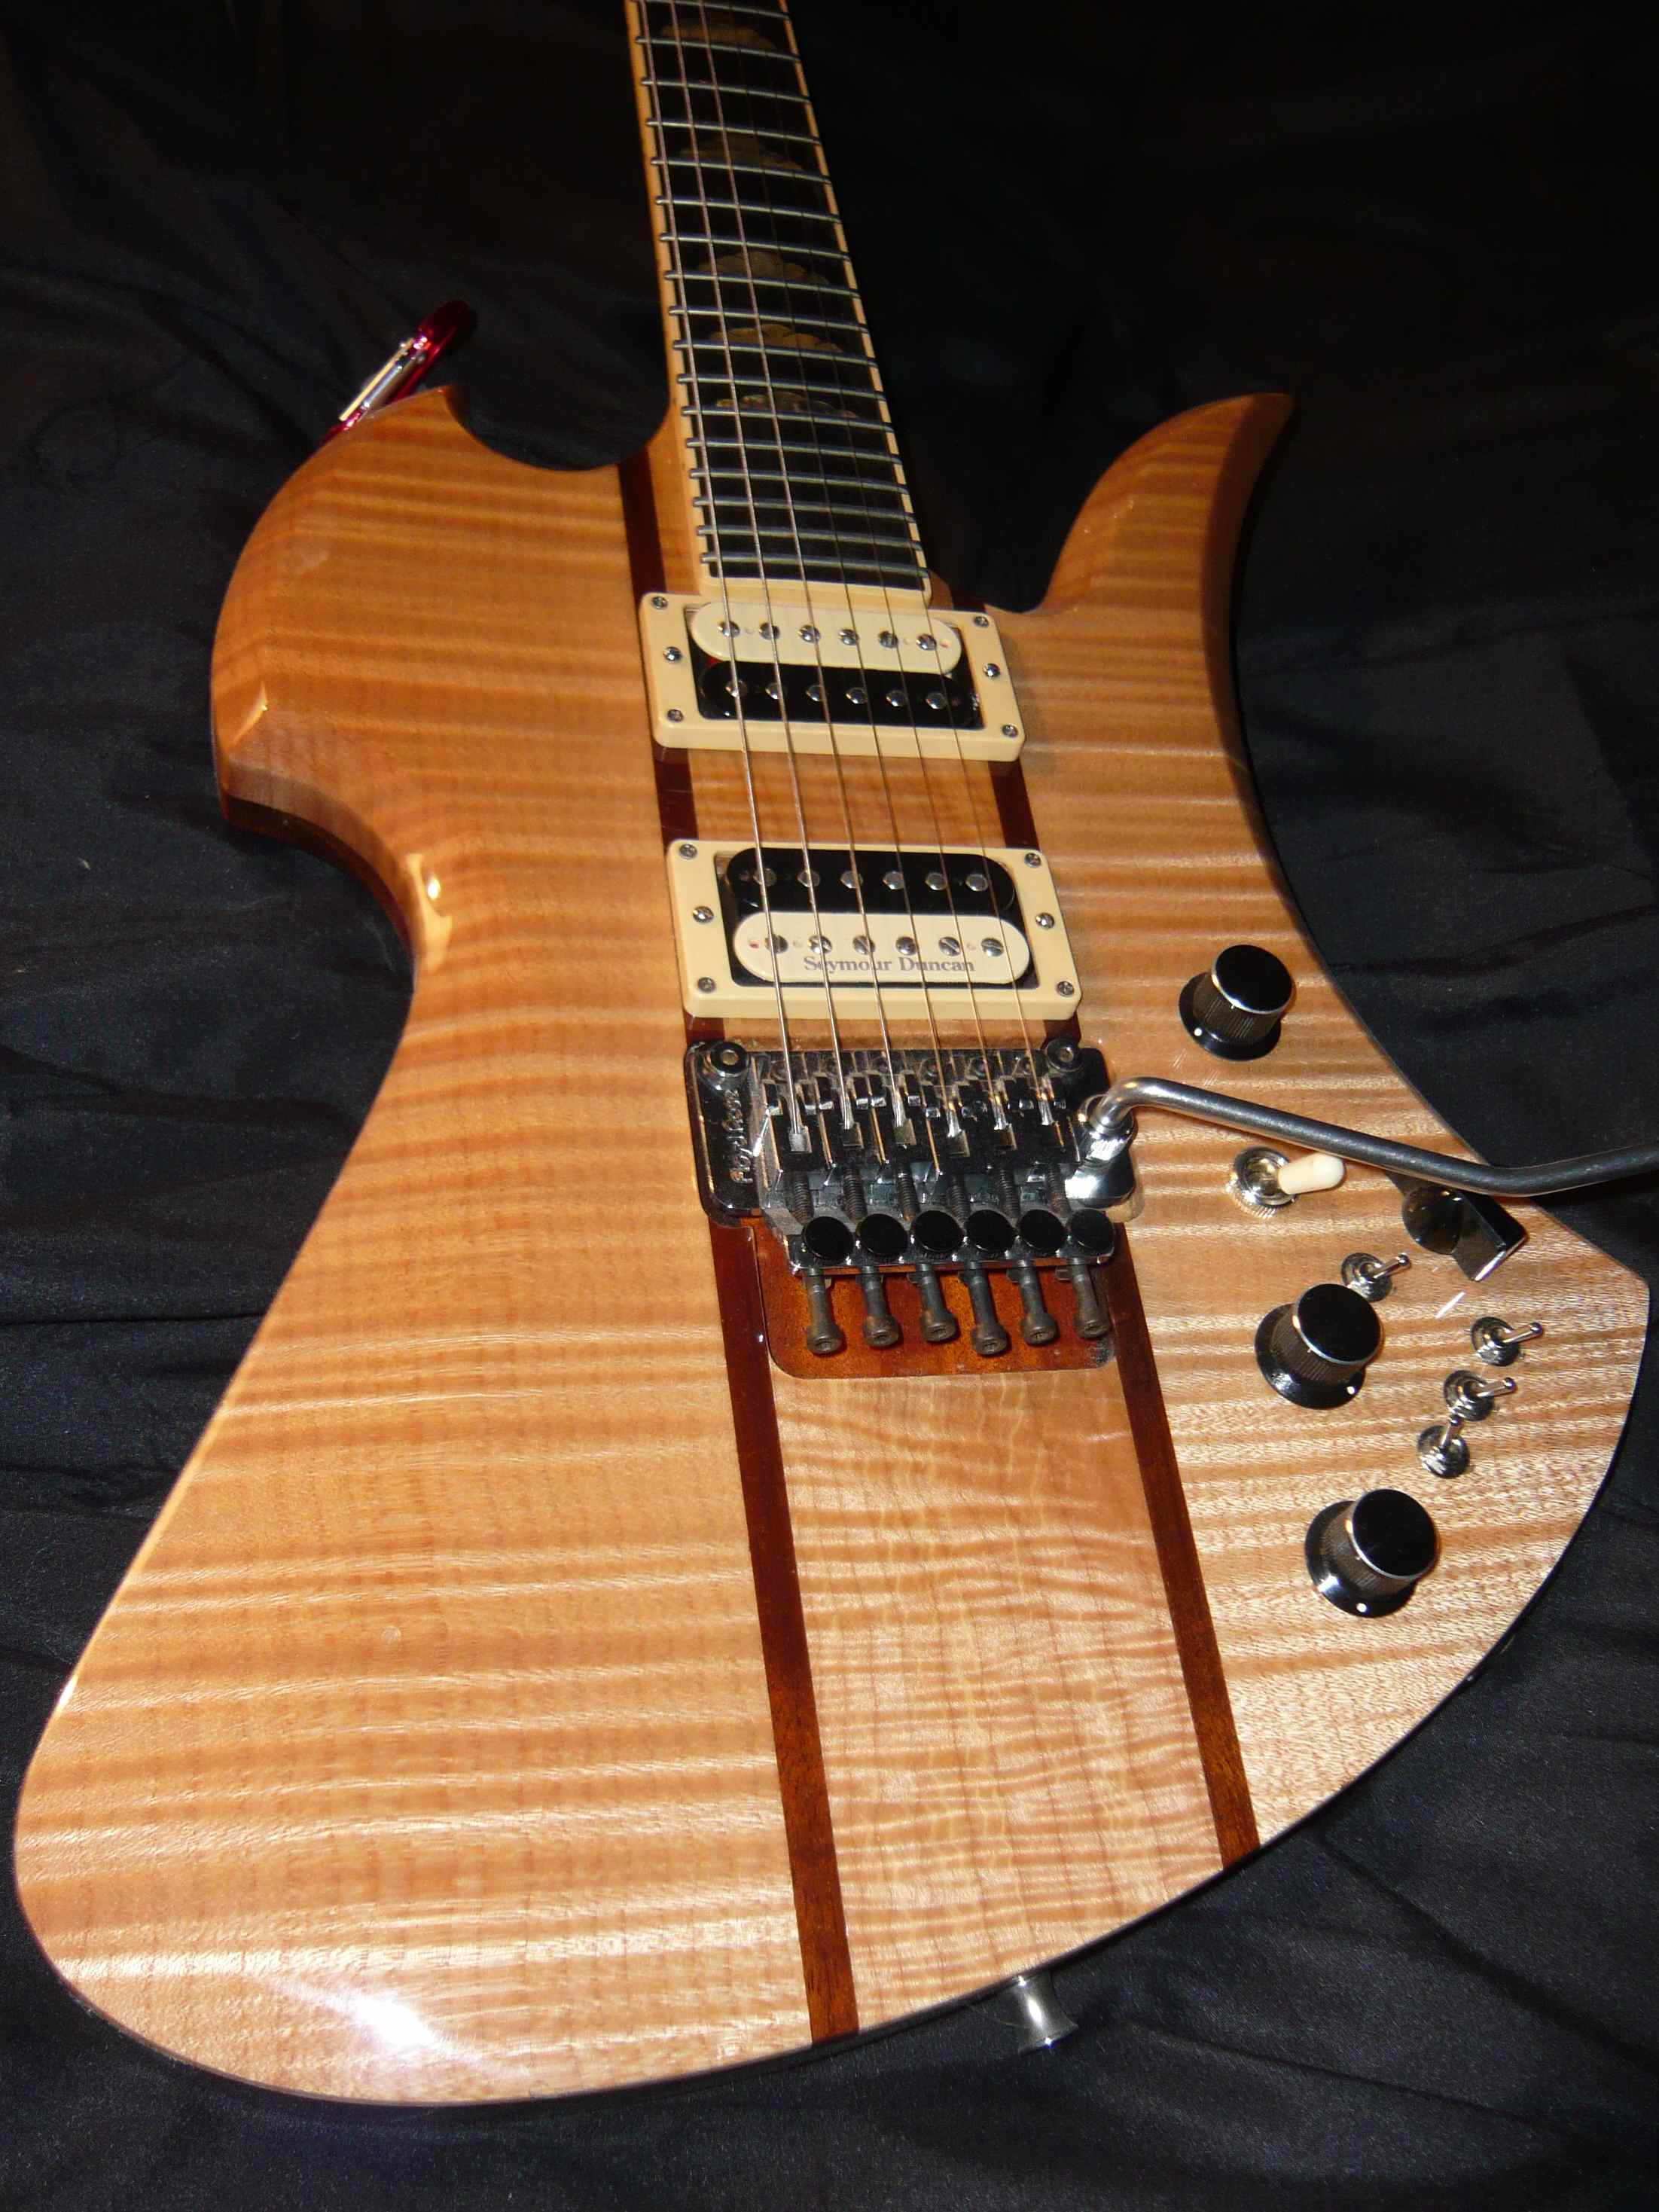 bc rich bass serial number lookup